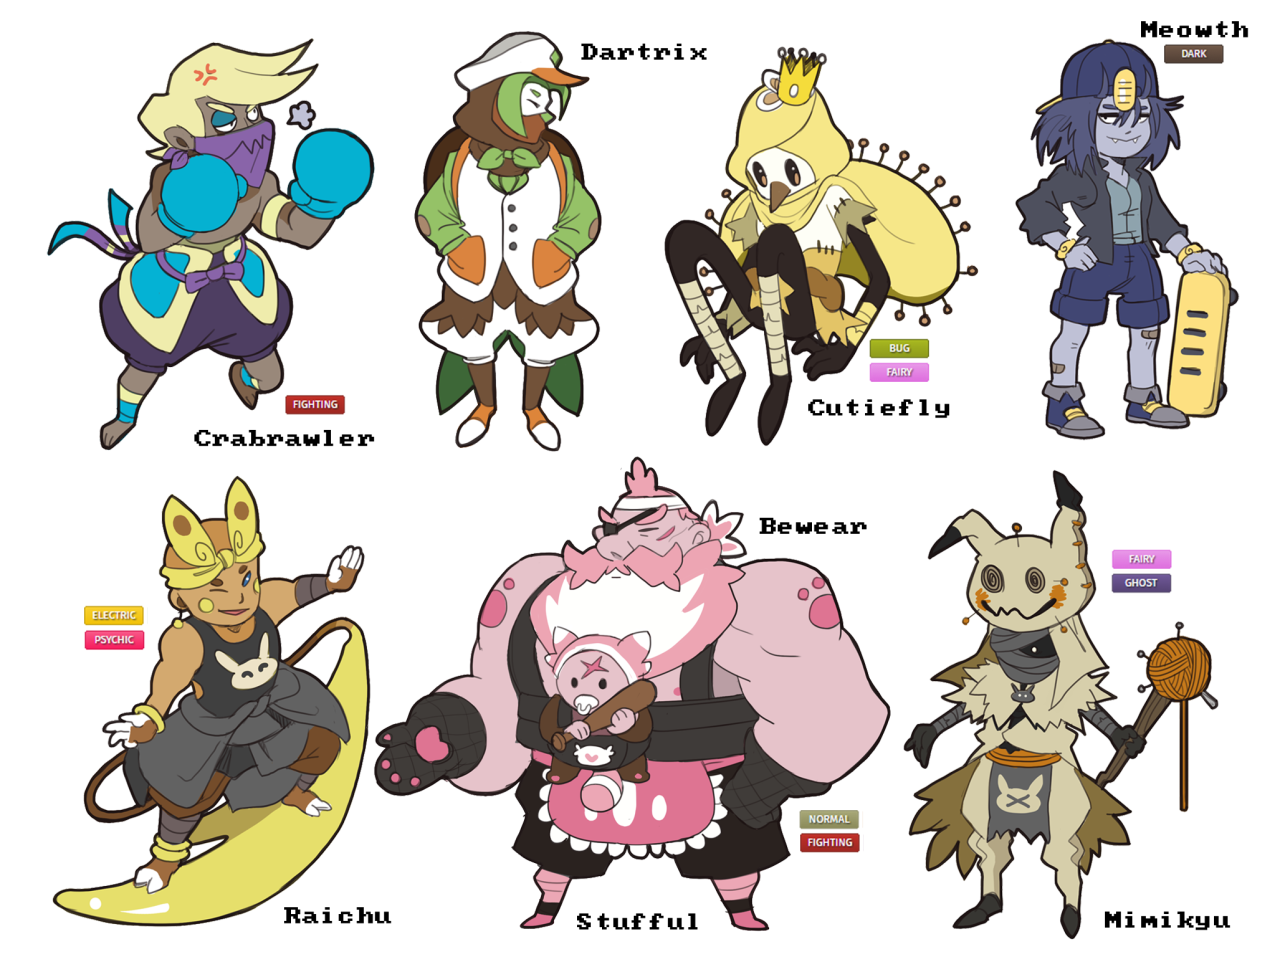 happy new years! here are all the pokemon gijinka adopts ive drawn so far up until this point. cant wait to do more next year! thanks for all the support!